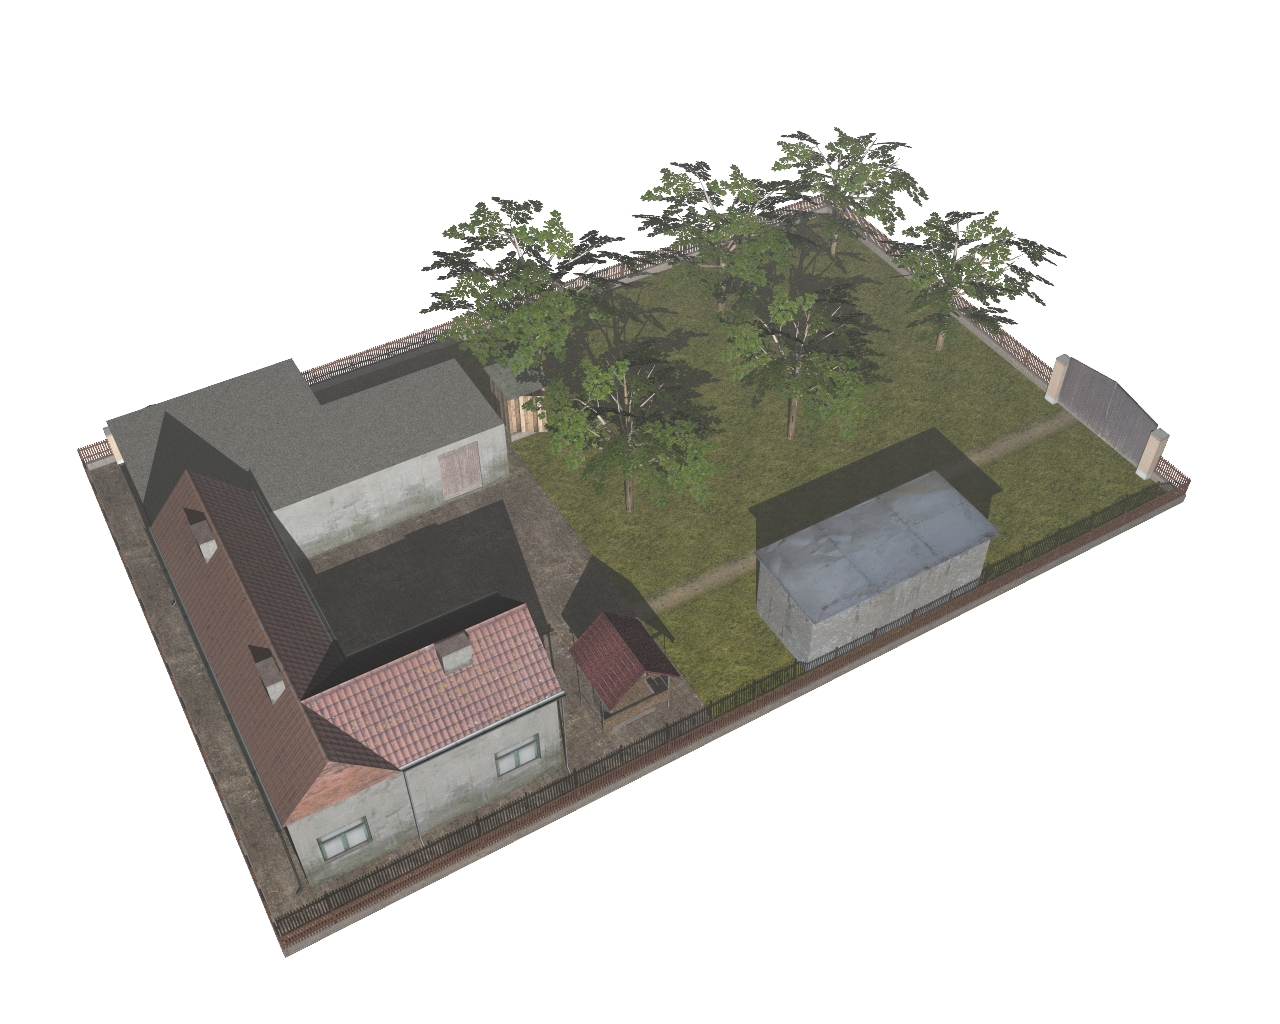 deso rumah tangga 3d model 3ds 164888